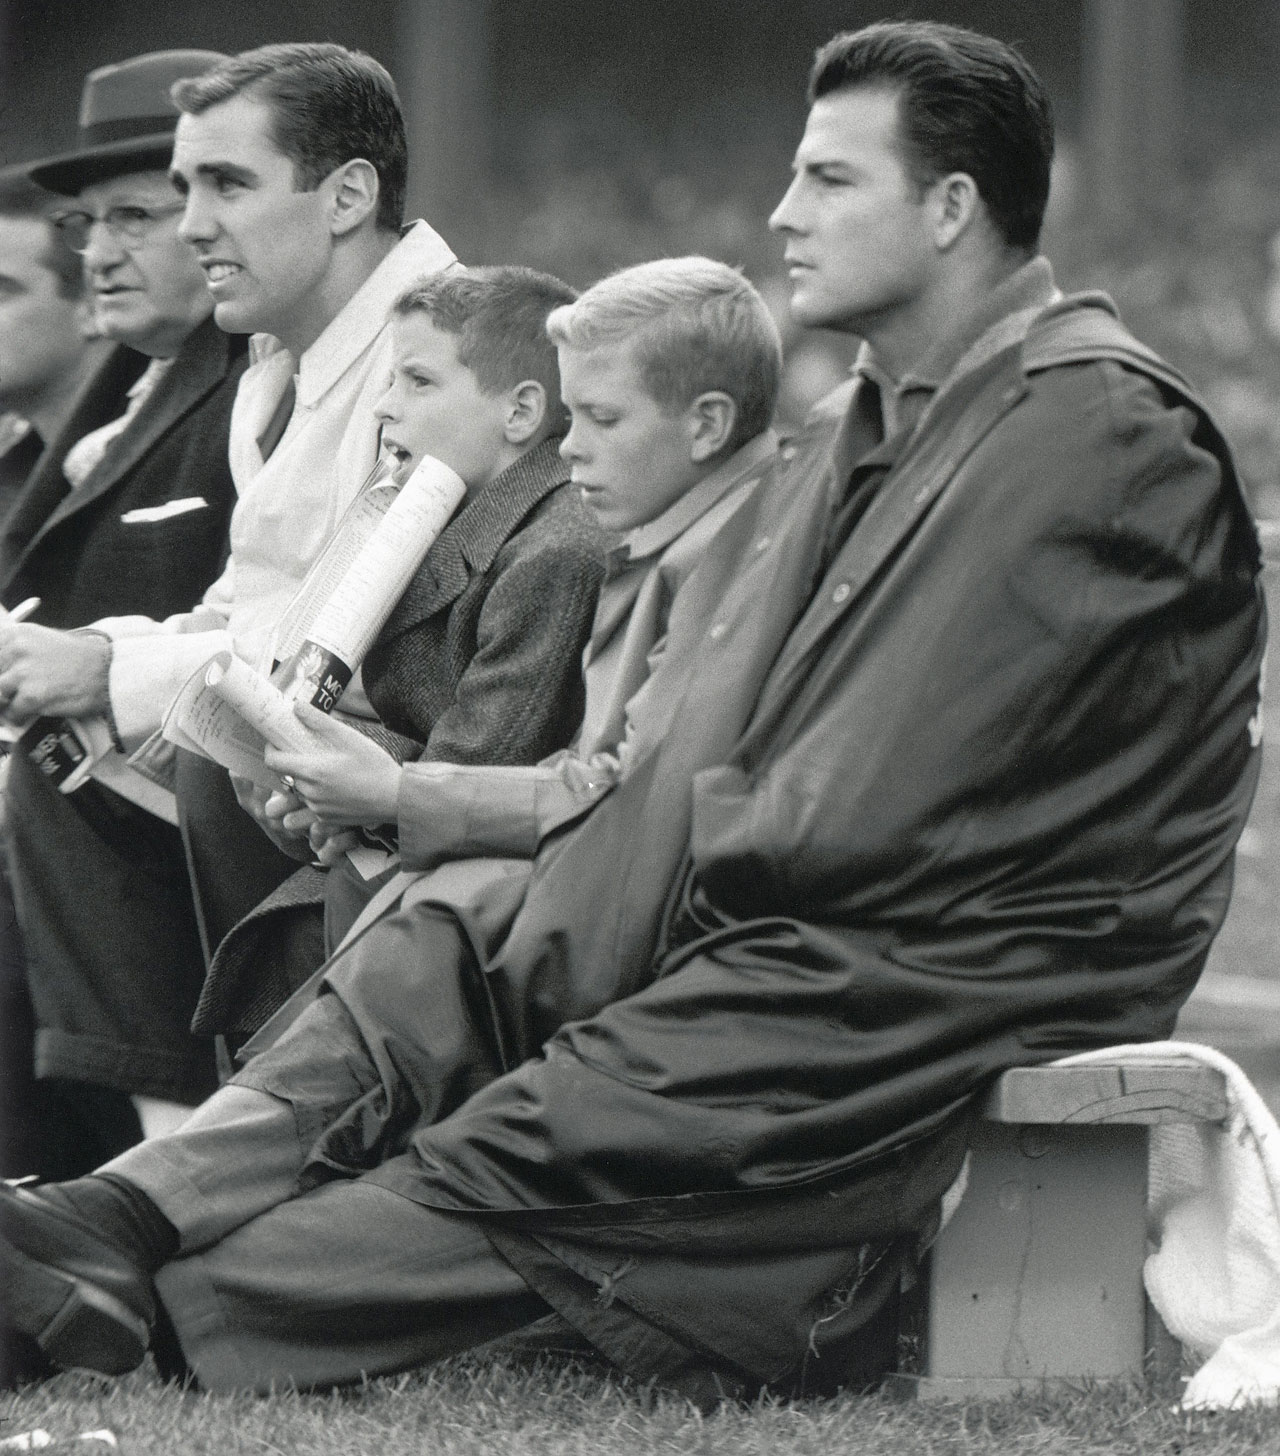 Frank Gifford watches from the bench during a 1959 game at Yankee Stadium.